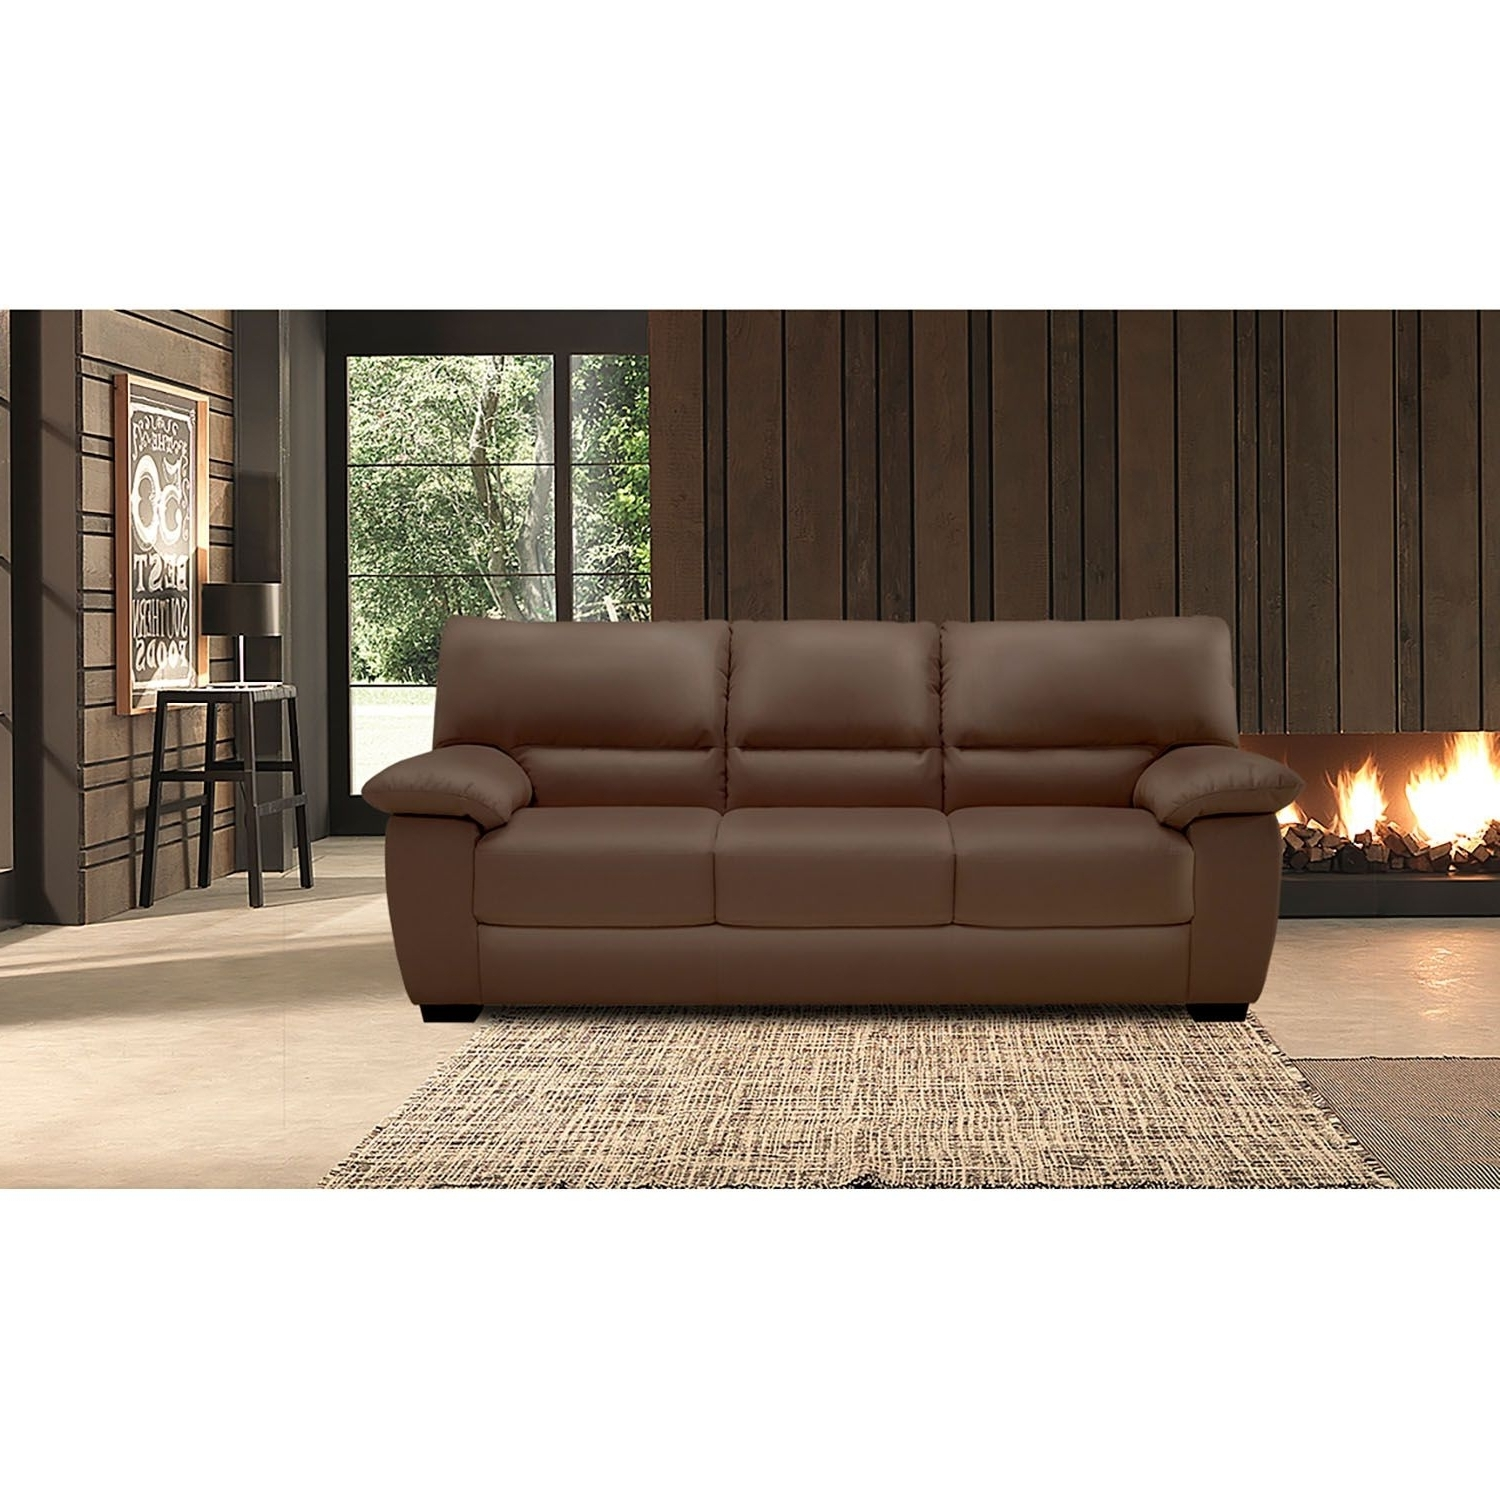 Leather Motion Sofa Sams Club • Leather Sofa In Most Up To Date Sectional Sofas At Sam's Club (View 6 of 20)